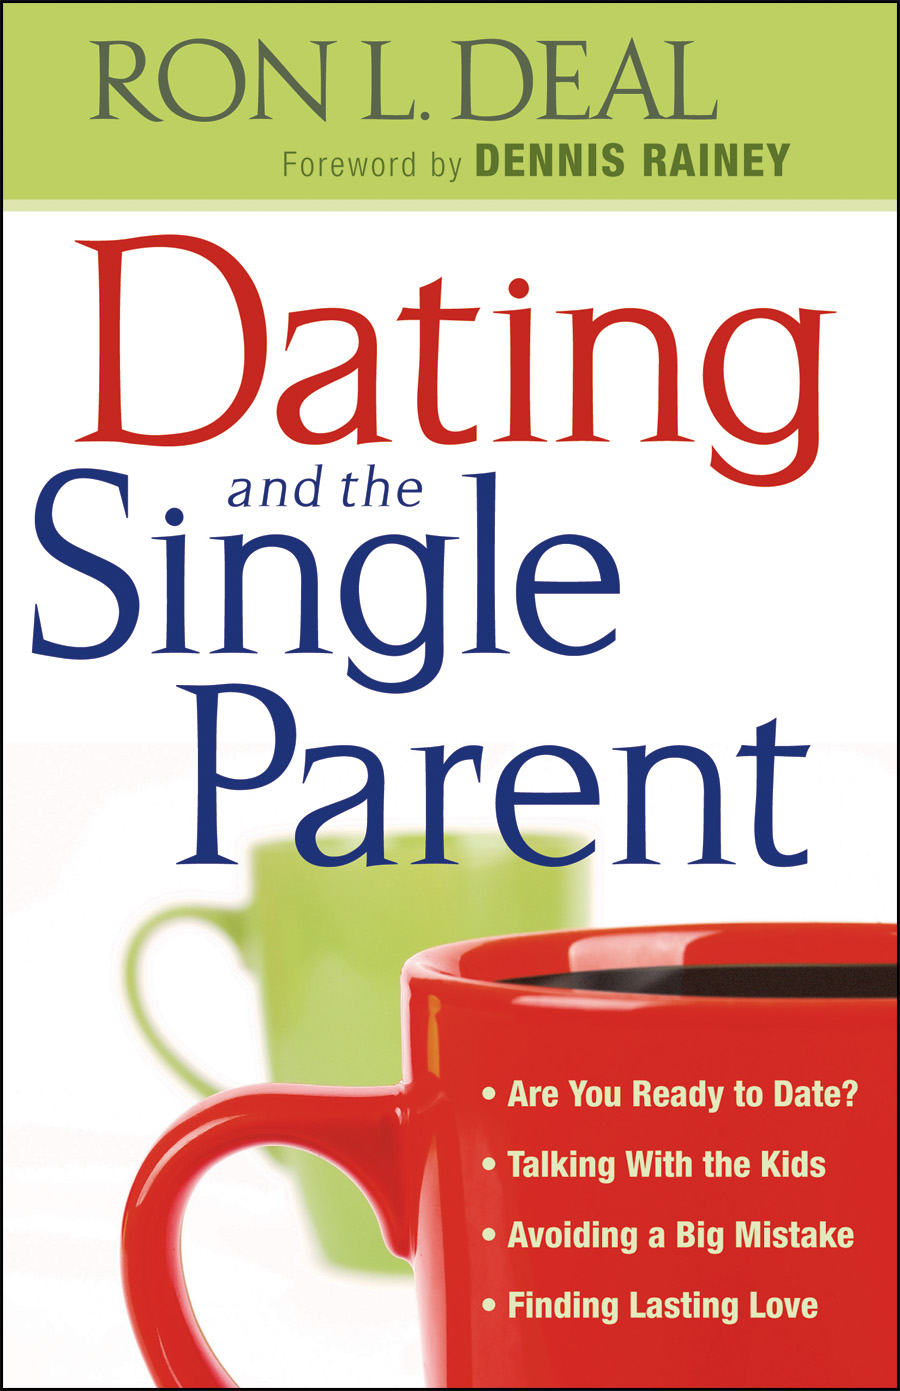 Single and dating book